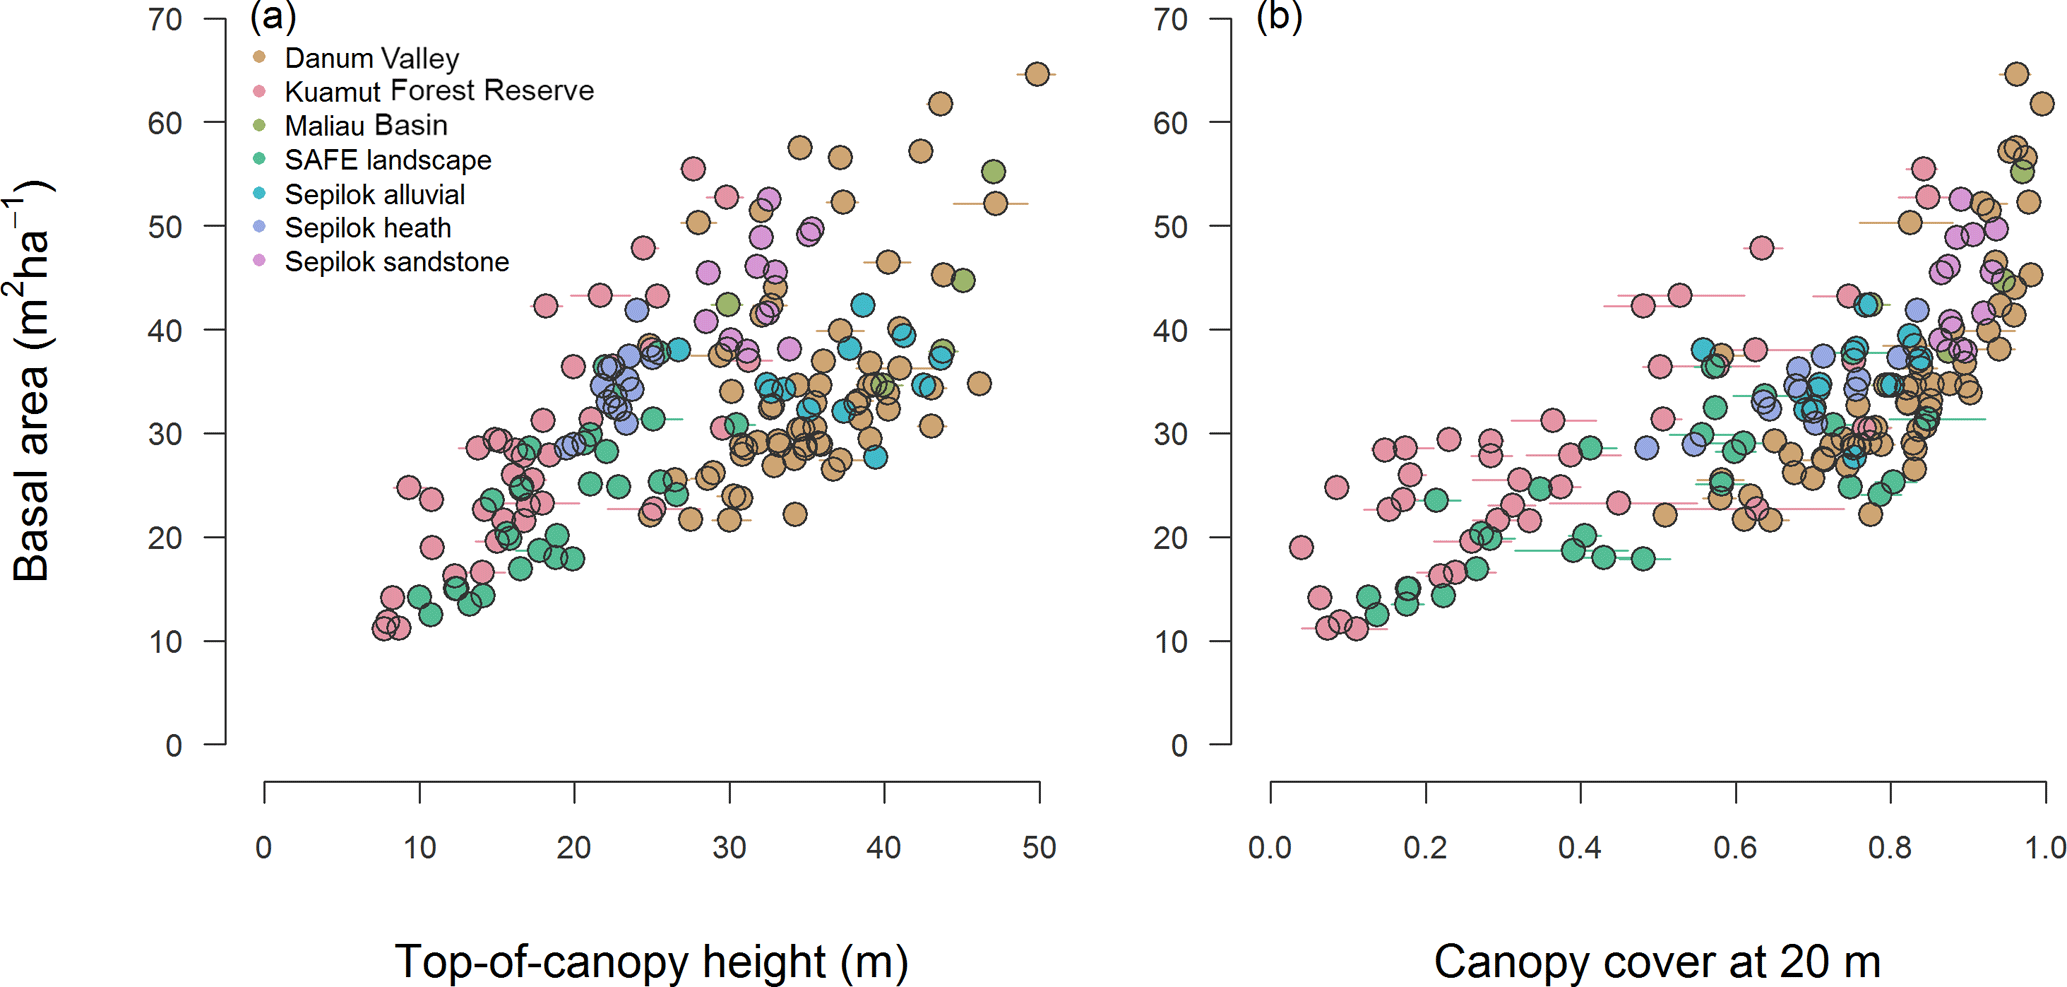 BG - Estimating aboveground carbon density and its uncertainty in